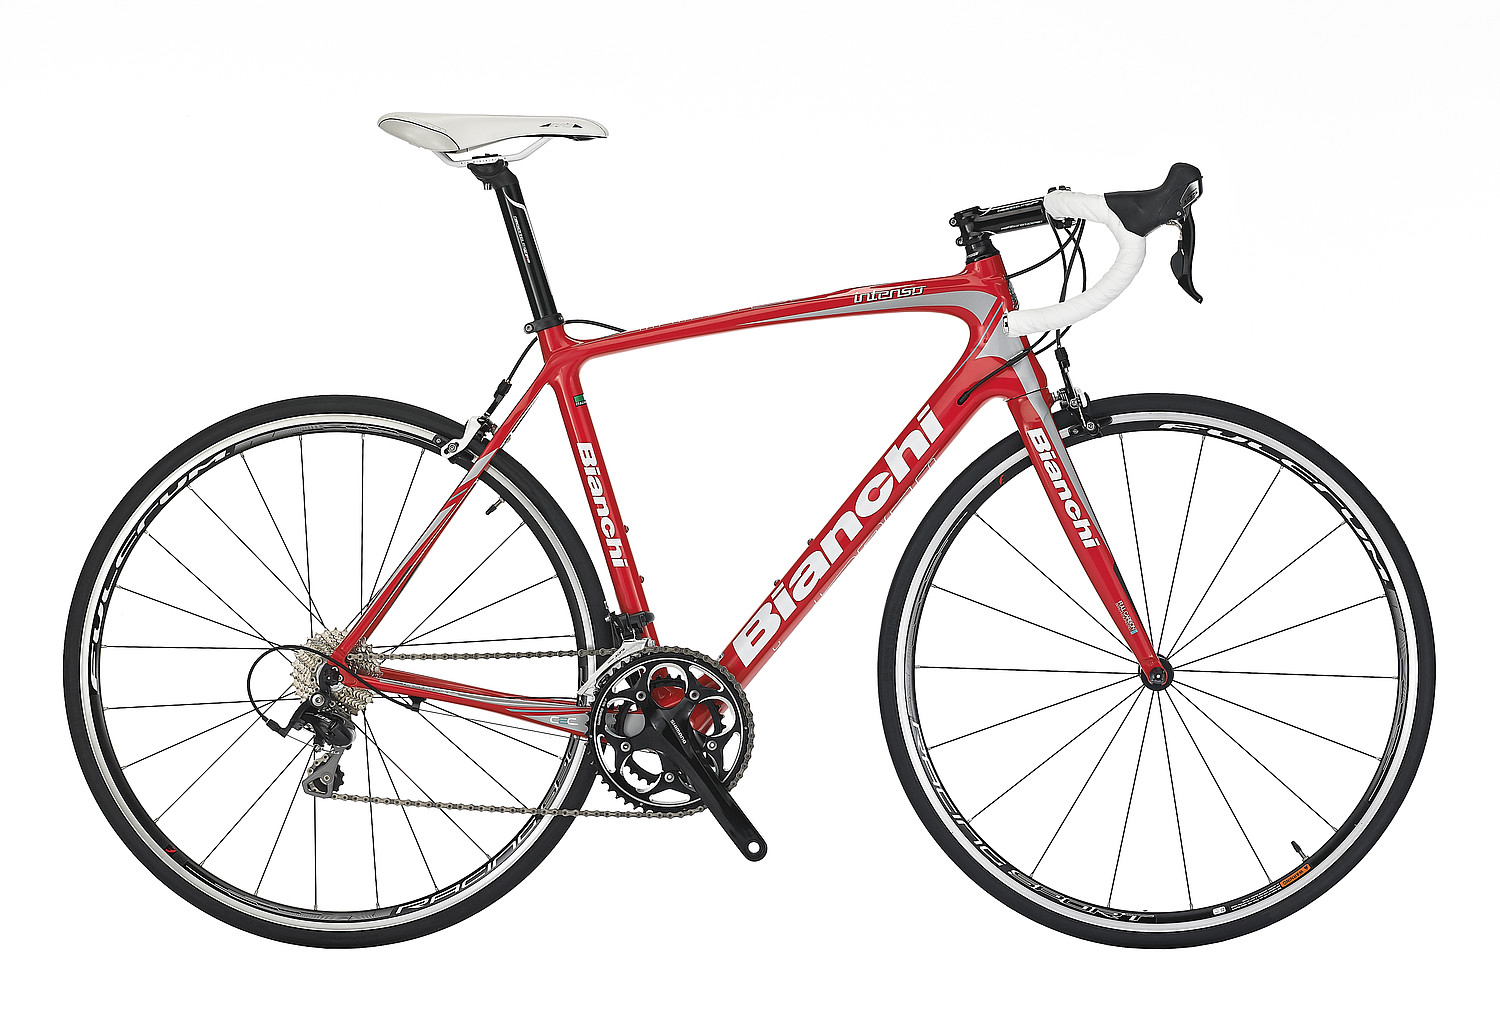 Bianchi Intenso 105 - Sale Price $1,799.99 (Regular Price $2,200.00)Carbon frame and fork, Shimano 105 2 x 10 speed shifting.Available Sizes: 57cm